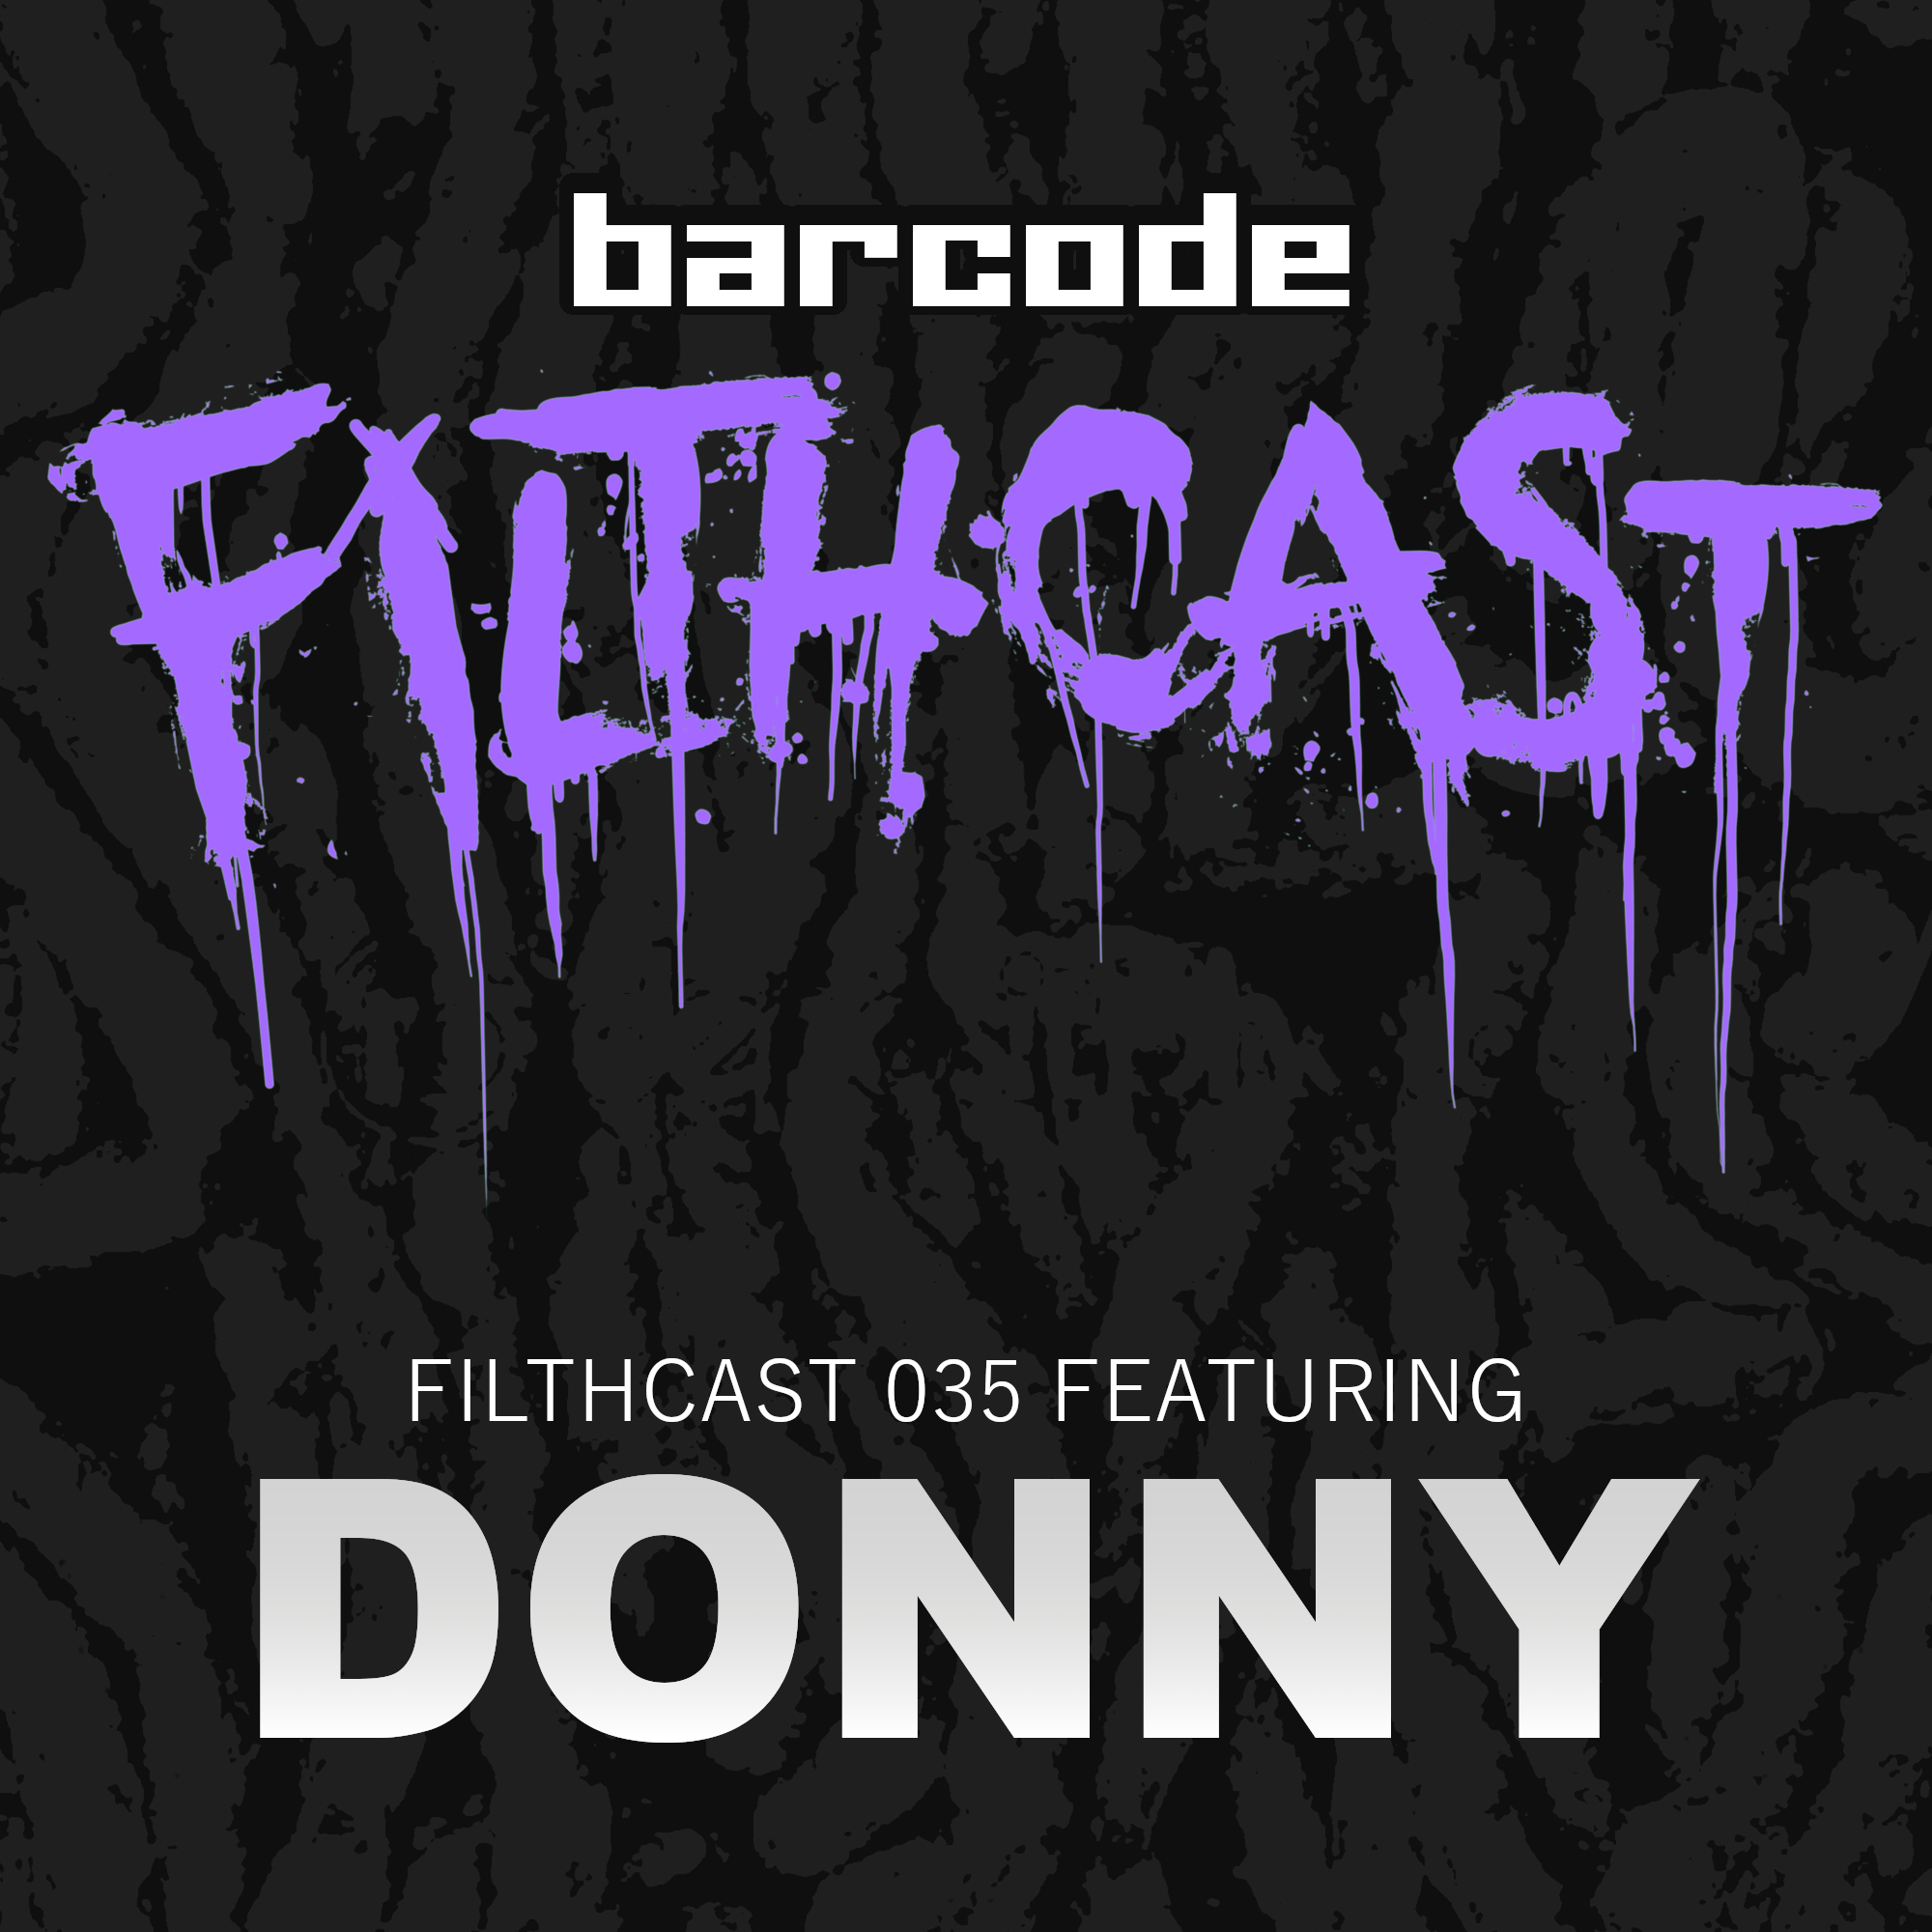 OWW YESSSS! Filthcast 035 sees the return of Donny!! This time an exclusive 1-hour mix, filled with tracks off his 'Life' EP on Barcode Recordings. Kick its face off...